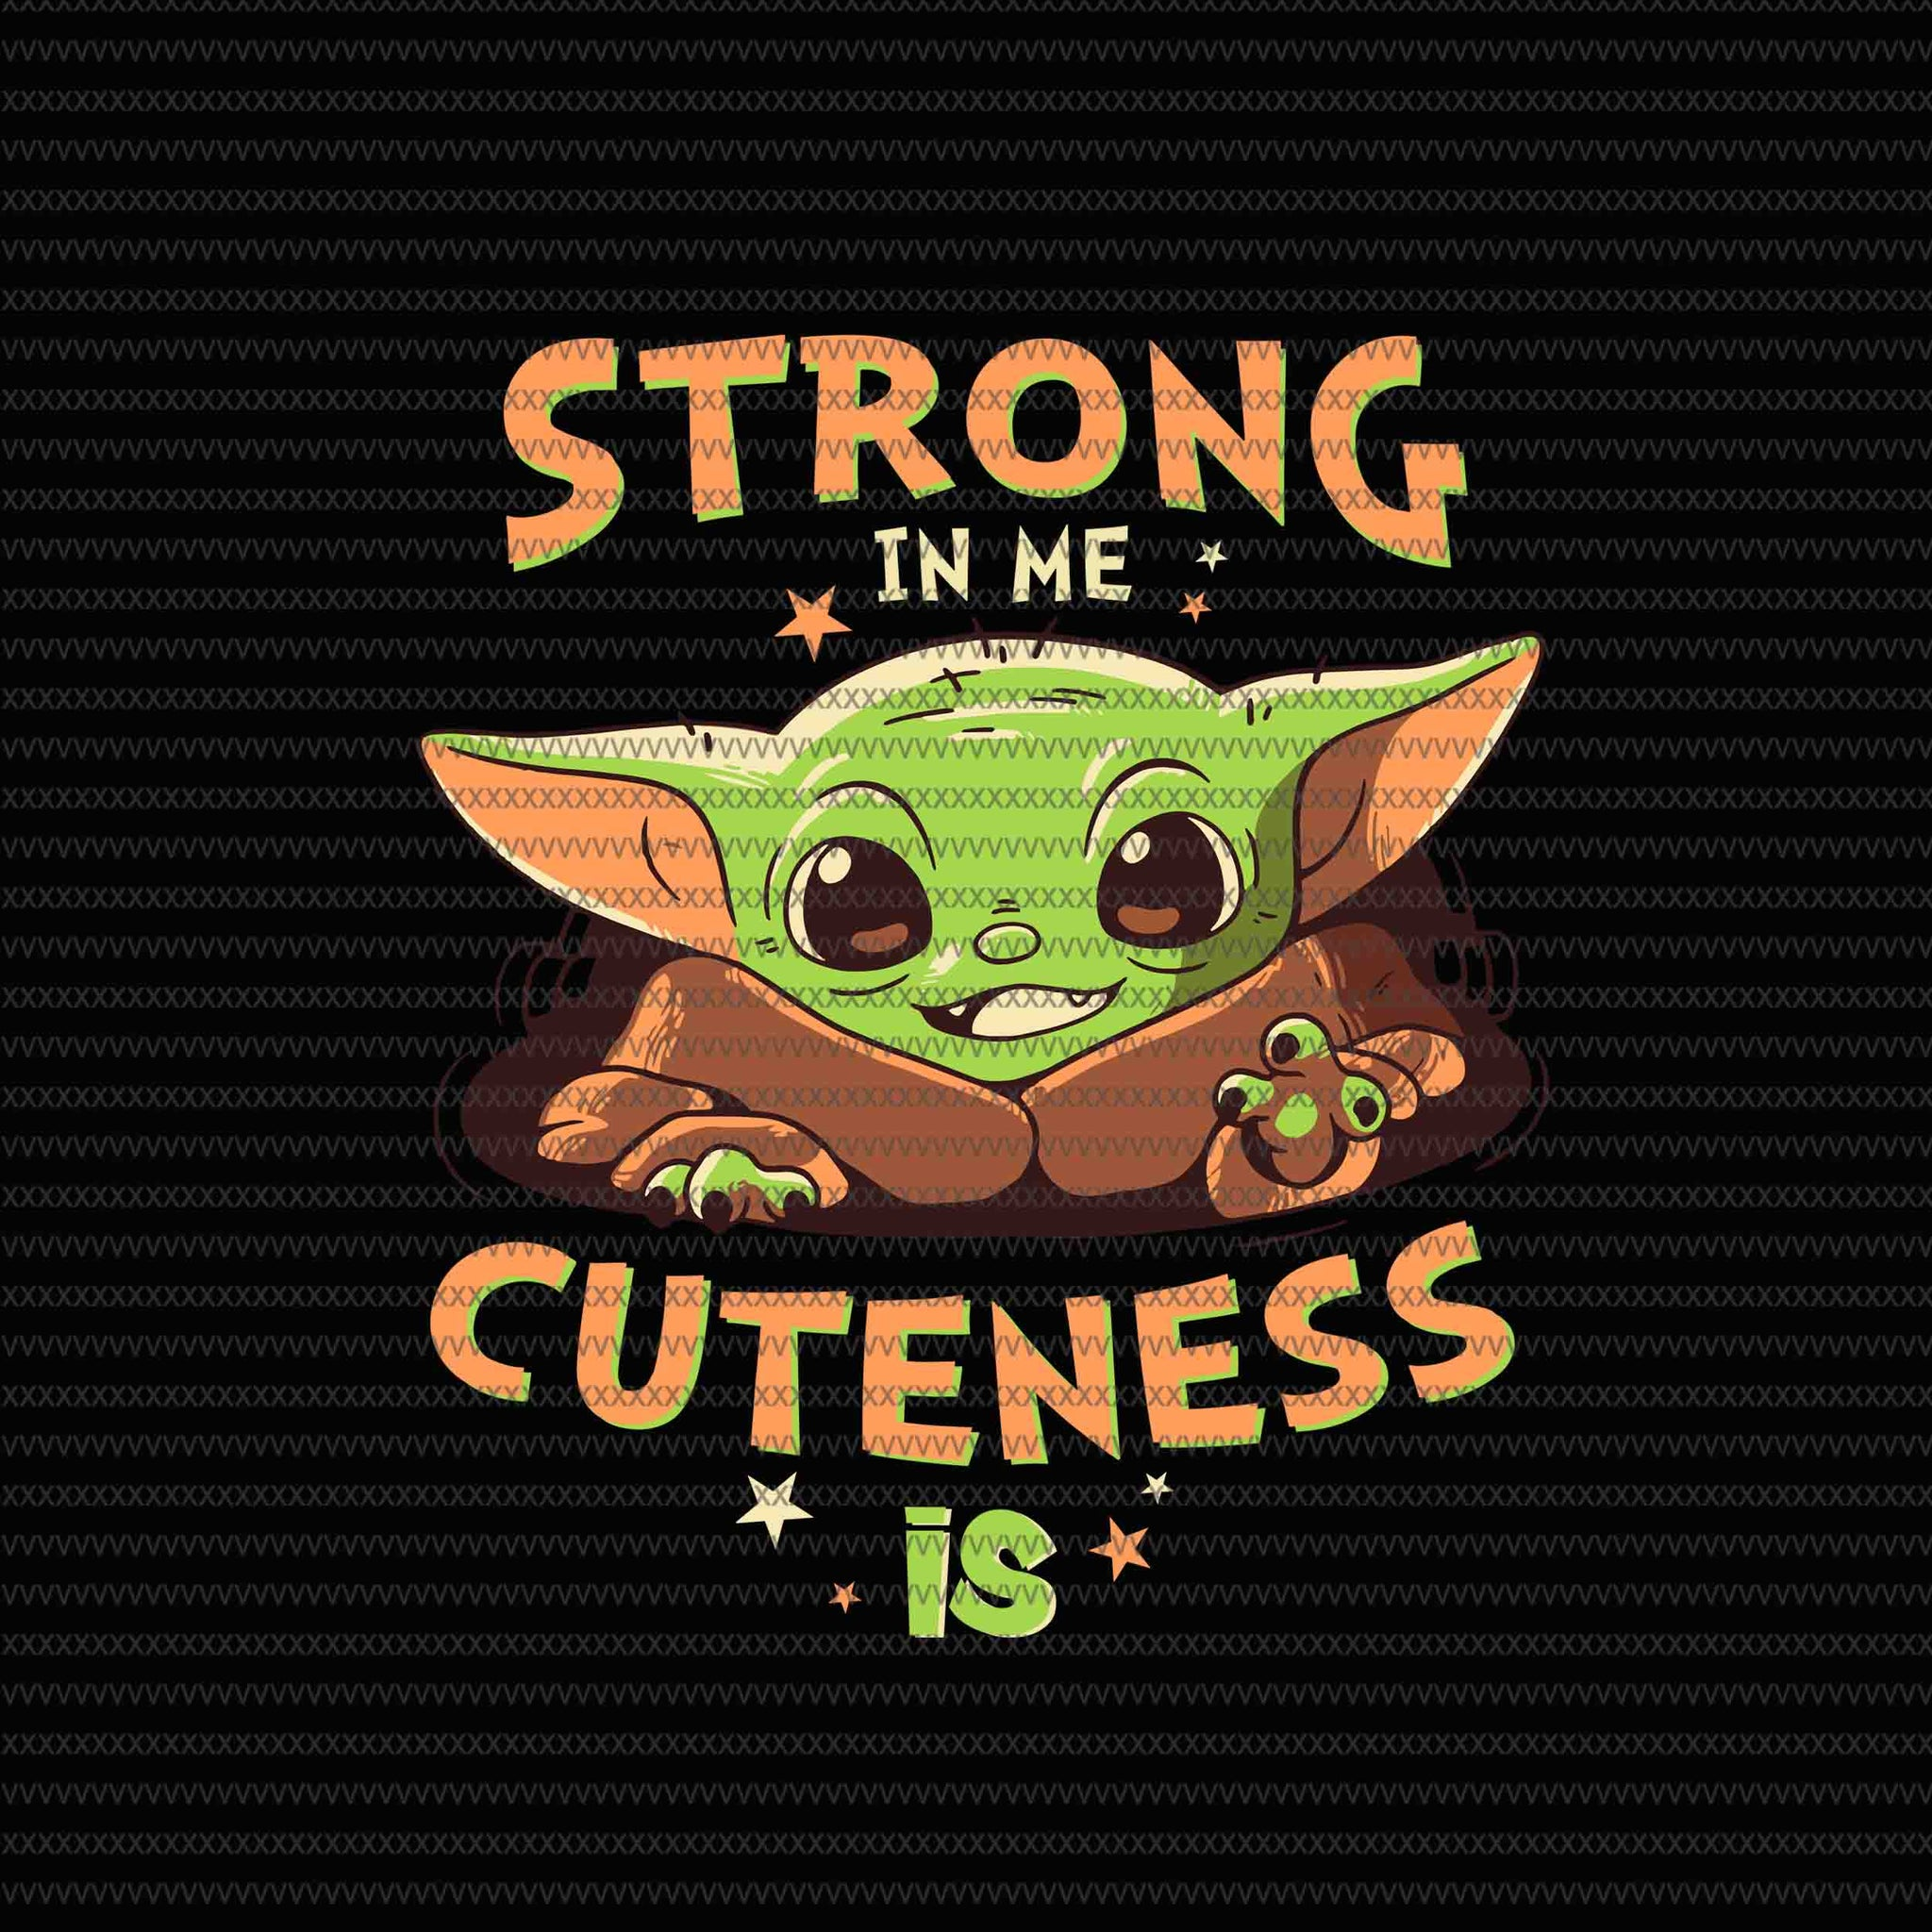 Strong in me cuteness is, Baby on board, Baby yoda svg, baby yoda vector, baby yoda digital file, star wars svg, star wars vector, The Mandalorian the child svg